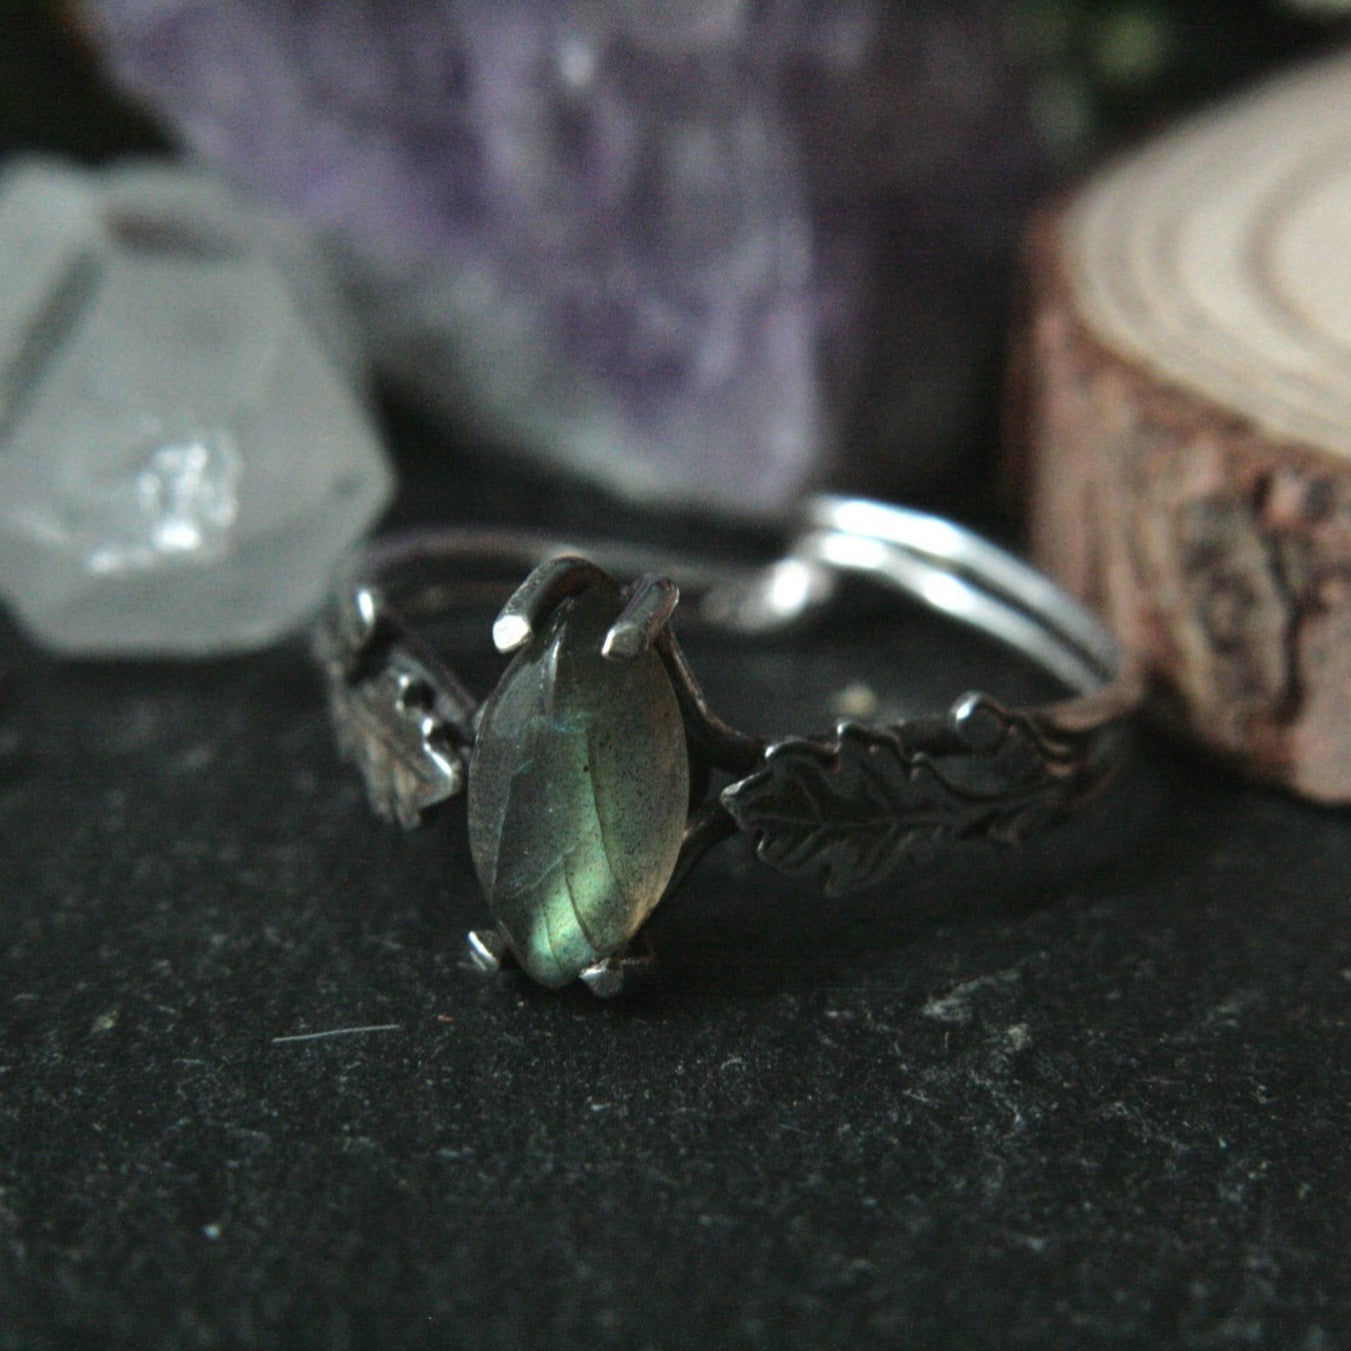 Size S 1/4 Labradorite Ring with Oak Leaves (US 9.25) - Andune Jewellery